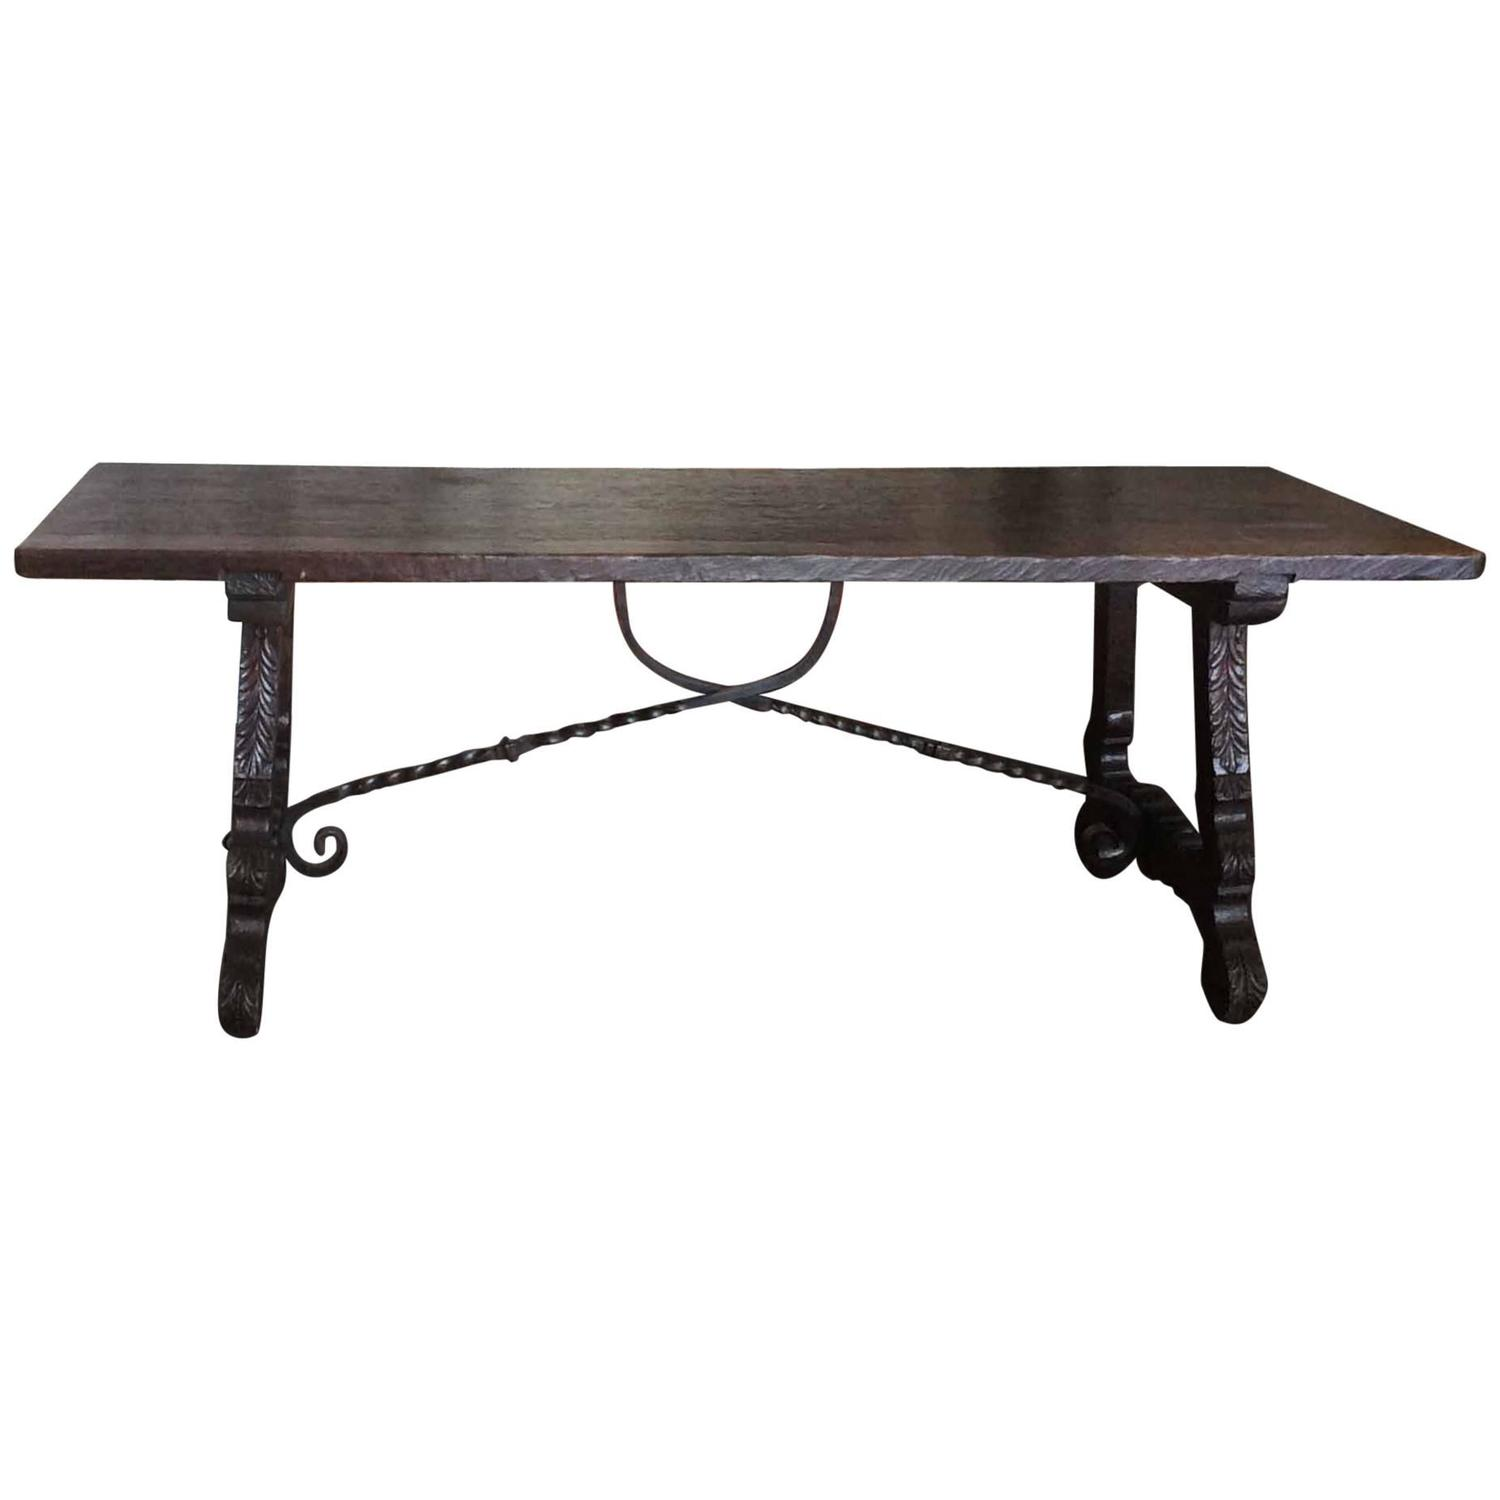 Antique spanish dining table at 1stdibs for Table in spanish